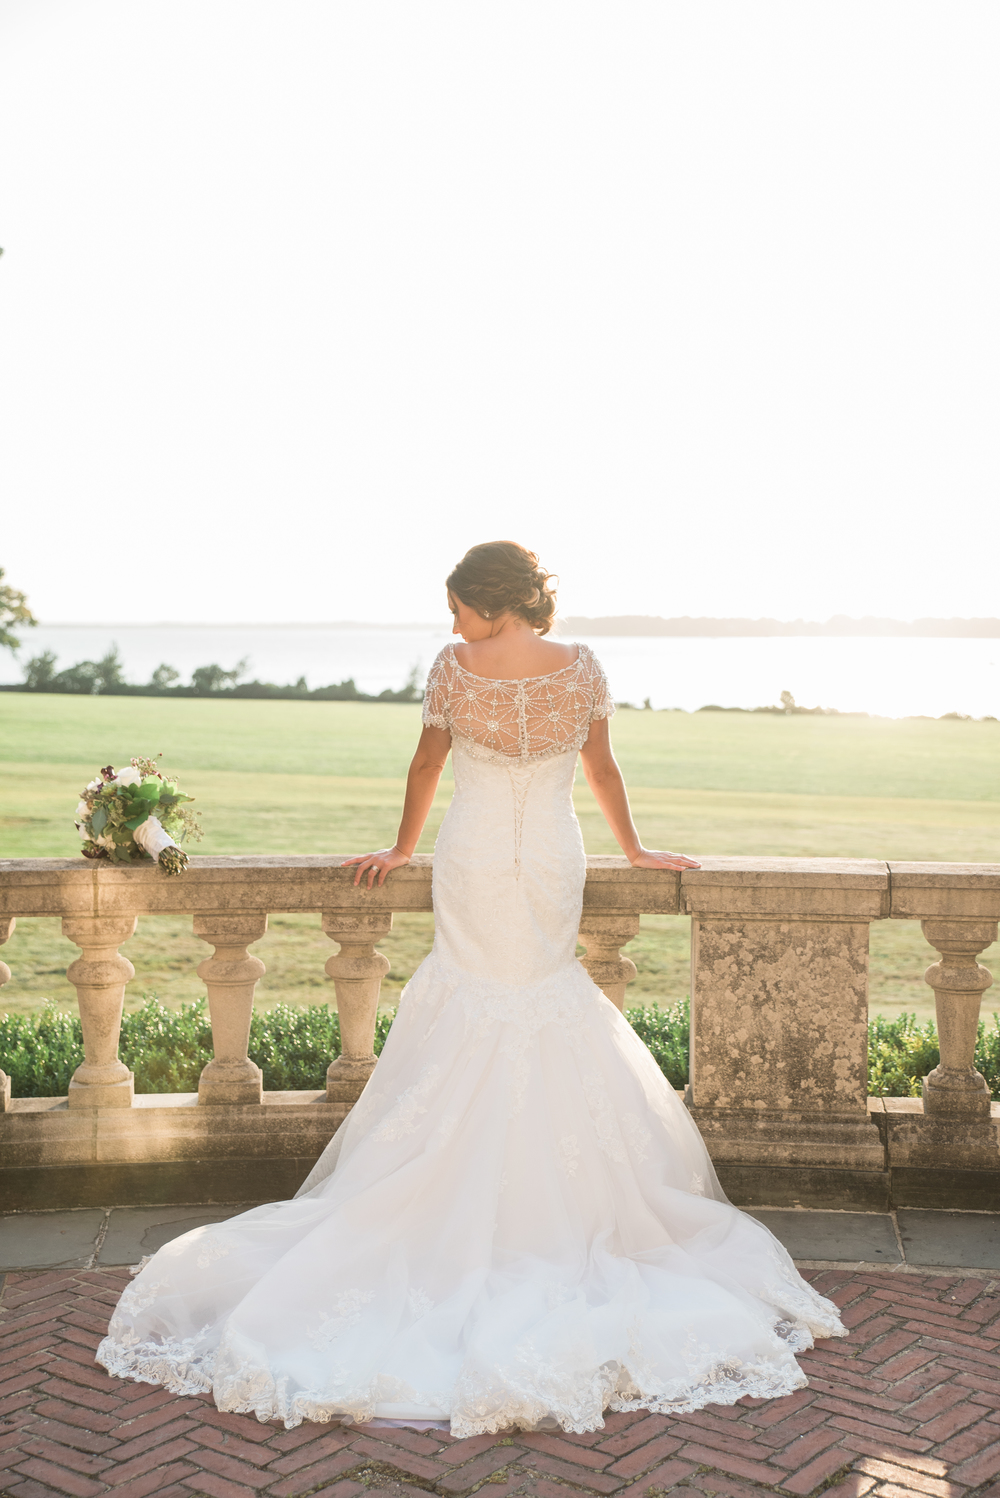 Blithewold Mansion bride in Bristol, RI - must take photo